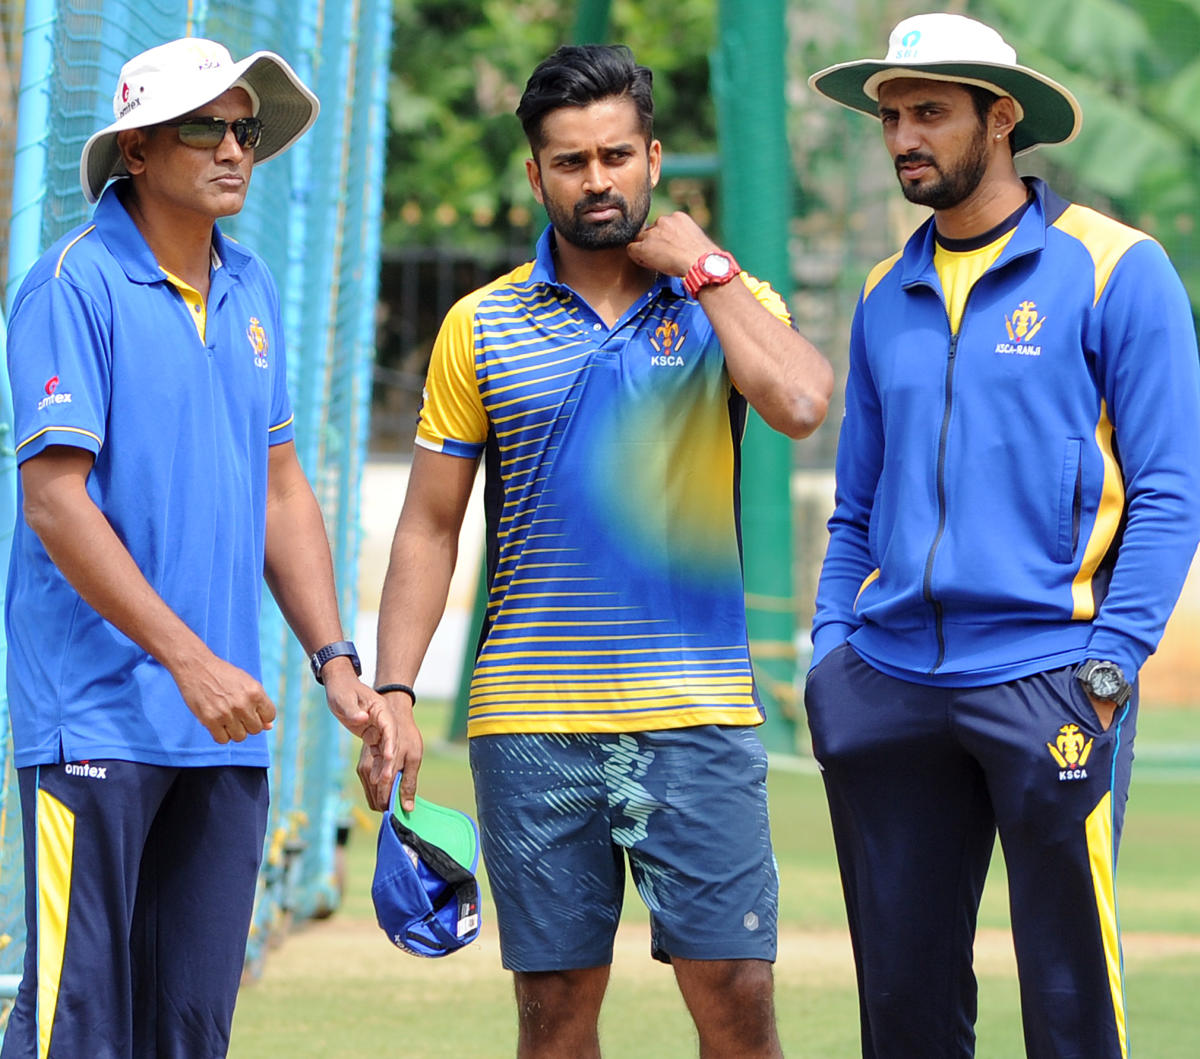 Karnataka cricket team captain R Vinay Kumar in chat with team goach Yeregud and bowling coach S Aravind during nets practice session at Chinnaswamy stadium in Bengaluru on Tuesday. Photo Srikanta Sharma R.